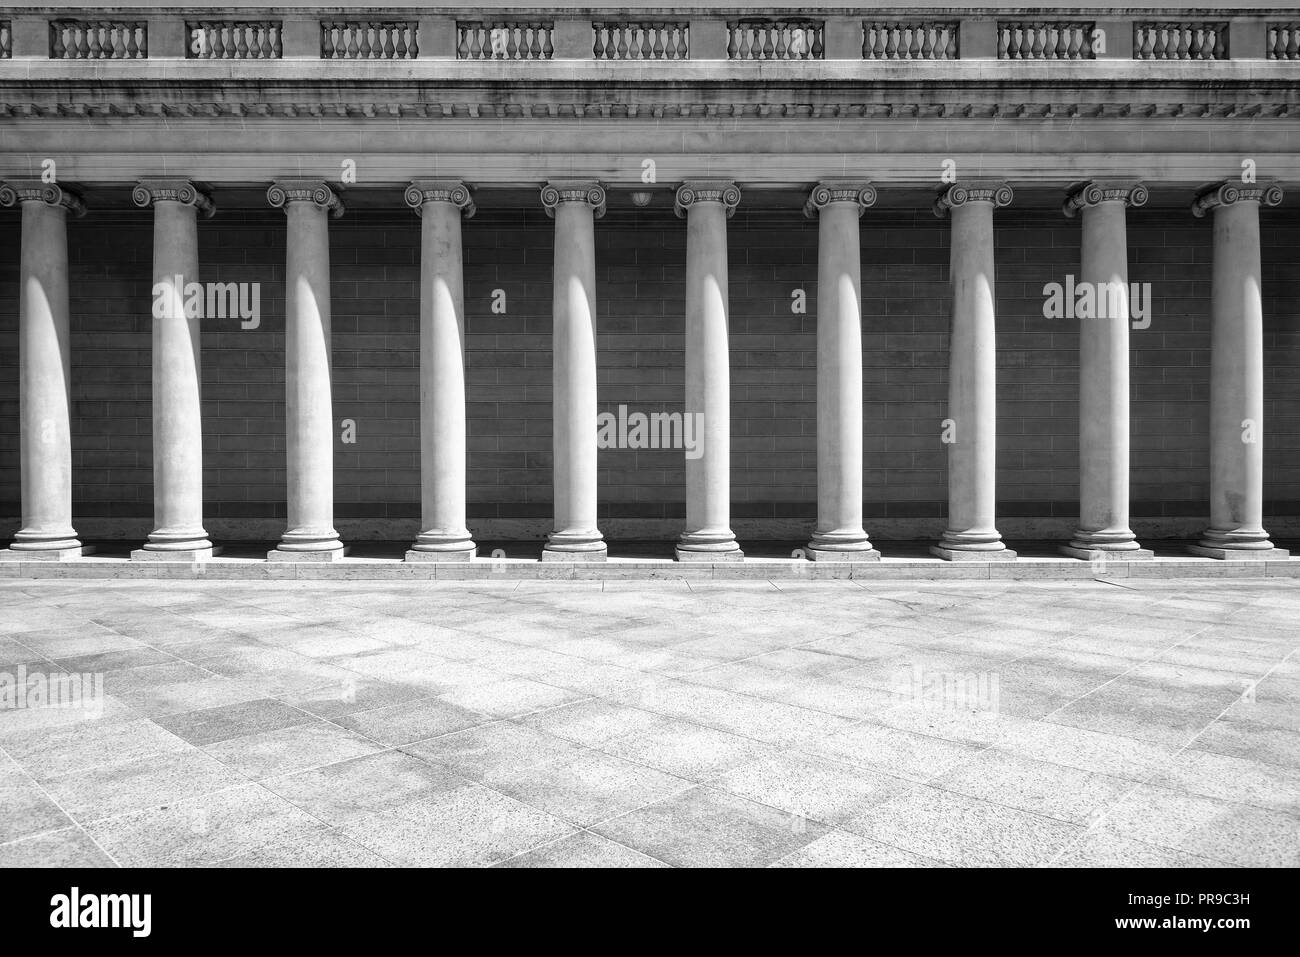 Pillars in retro style - Stock Image